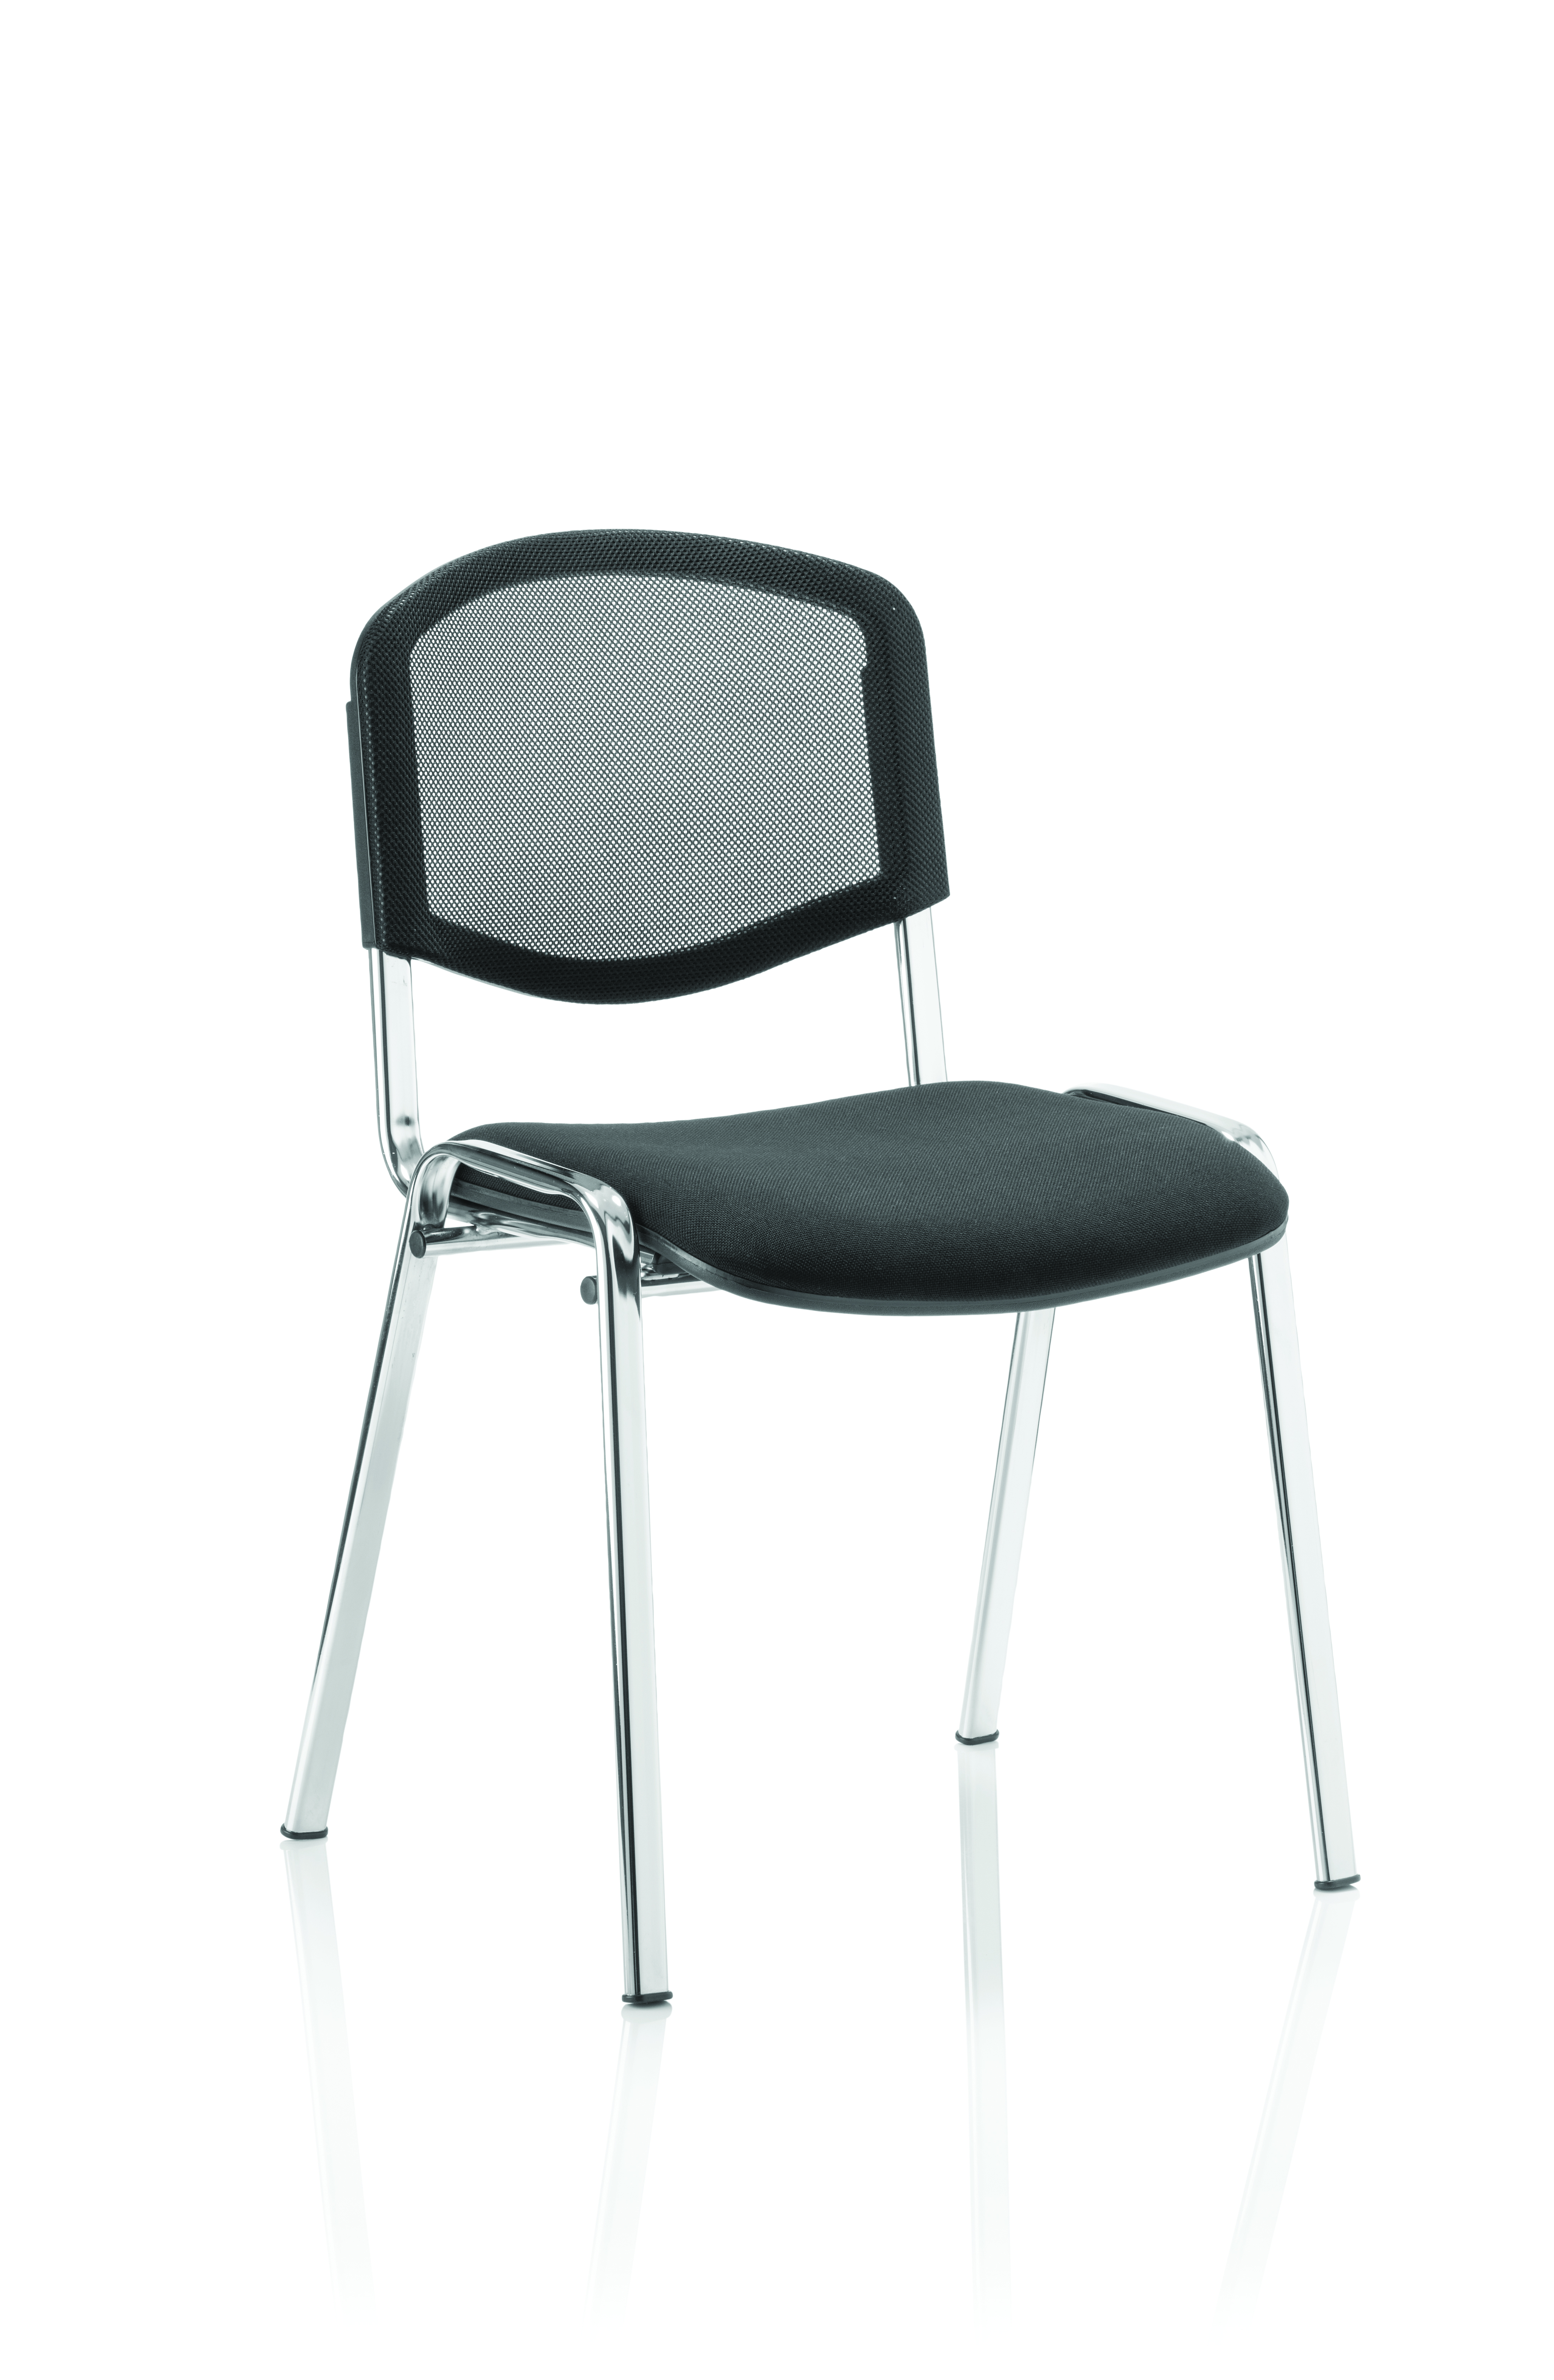 Stacking Chairs ISO Stacking Chair Black Mesh Chrome Frame BR000073